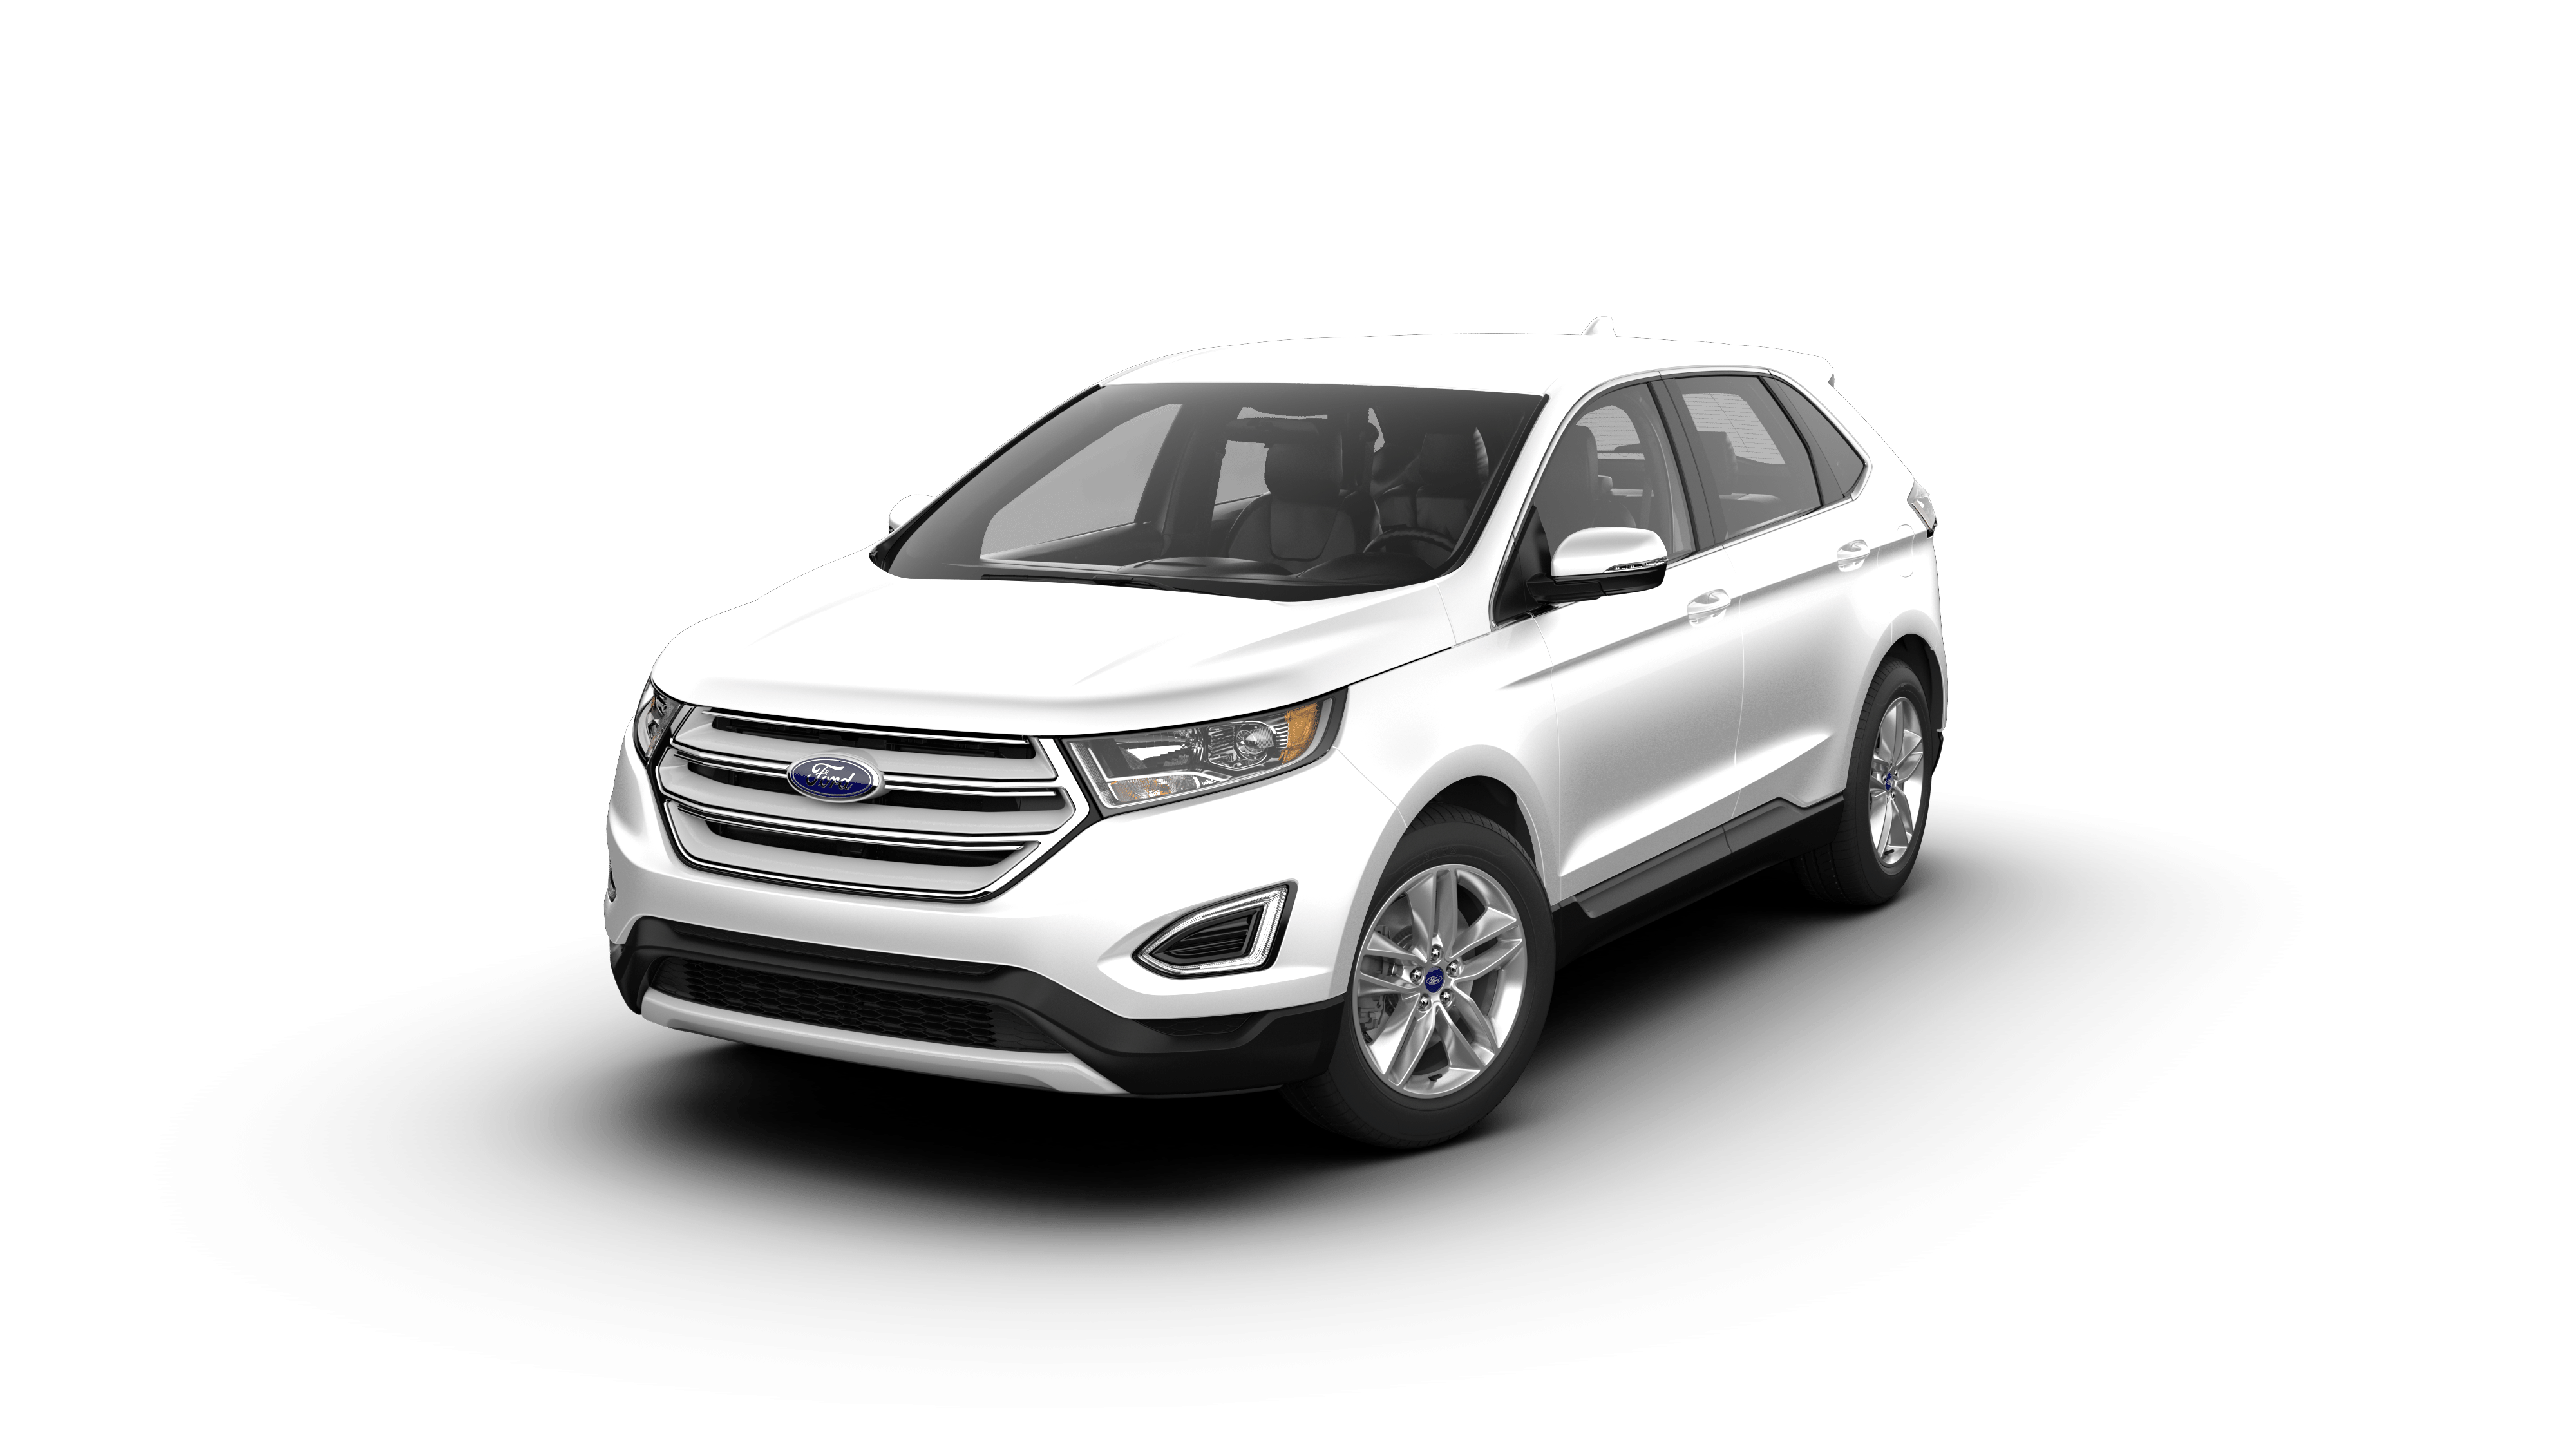 2018 Ford Edge Vehicle Photo in New Martinsville, WV 26155-2523